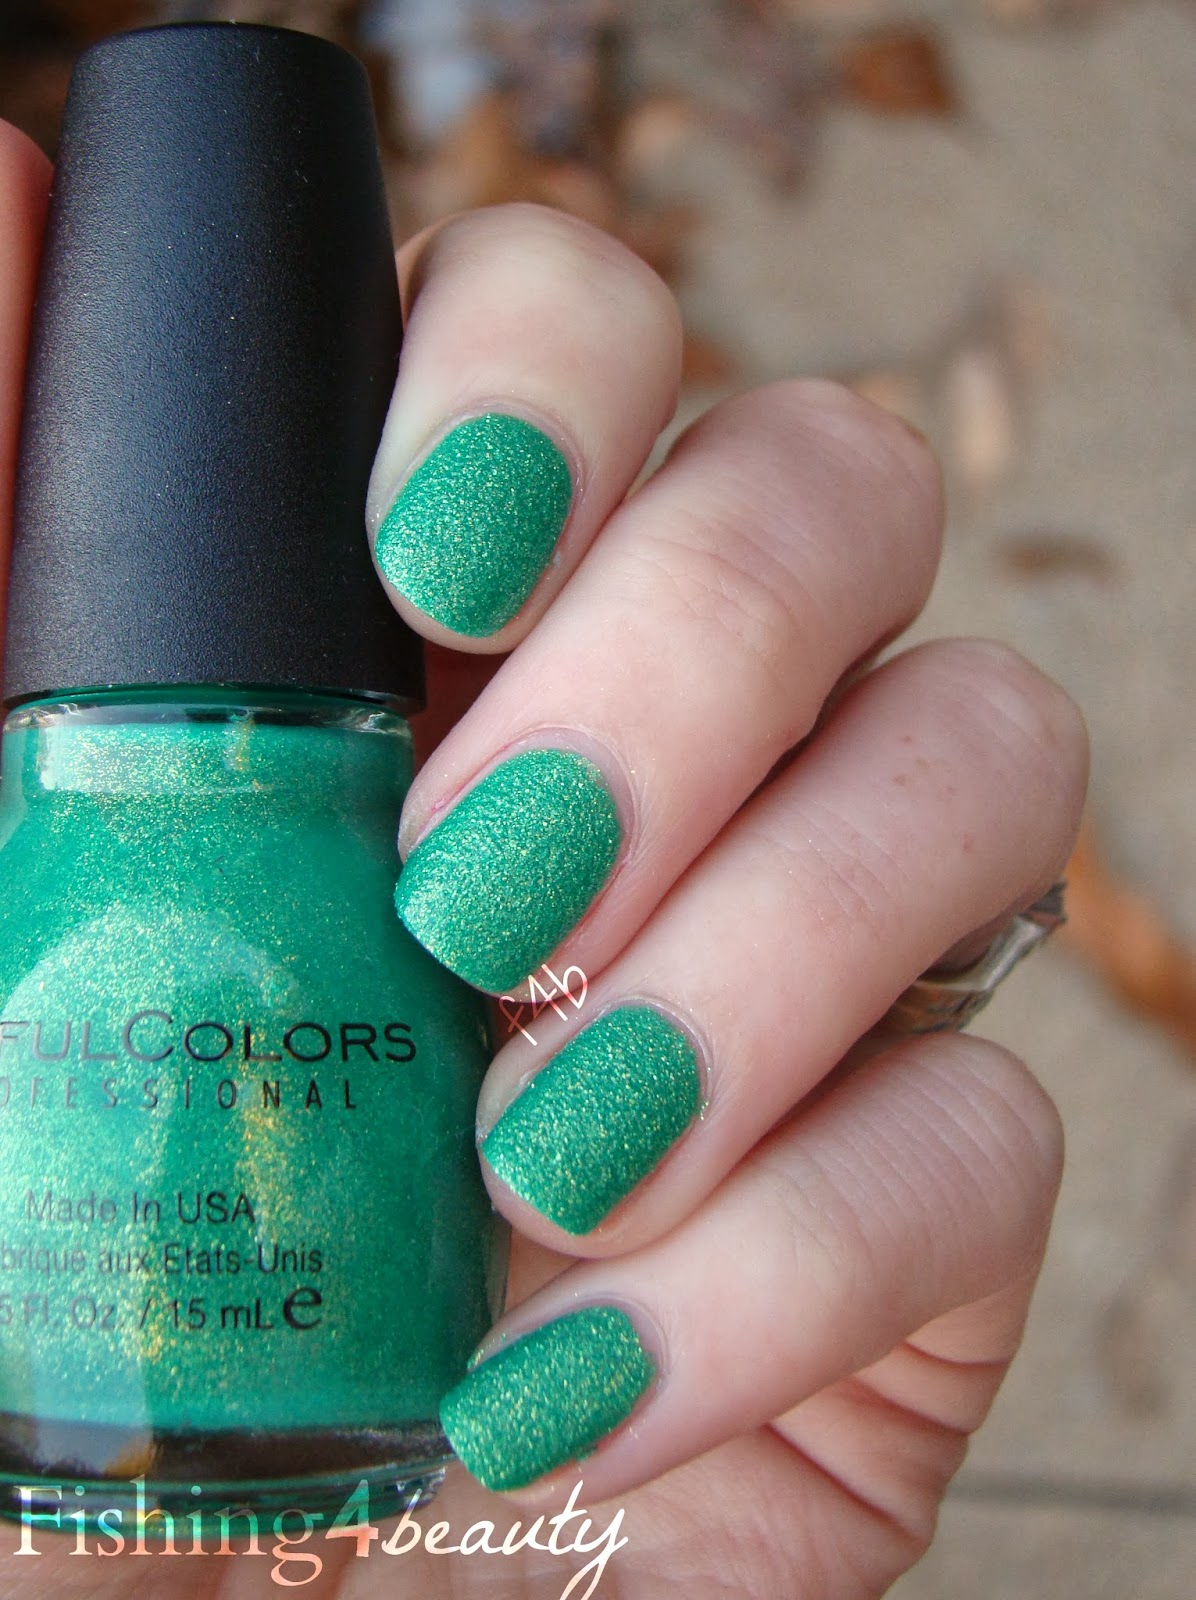 Fishing4beauty Sinfulcolors Crystal Crushes Emerald Envy